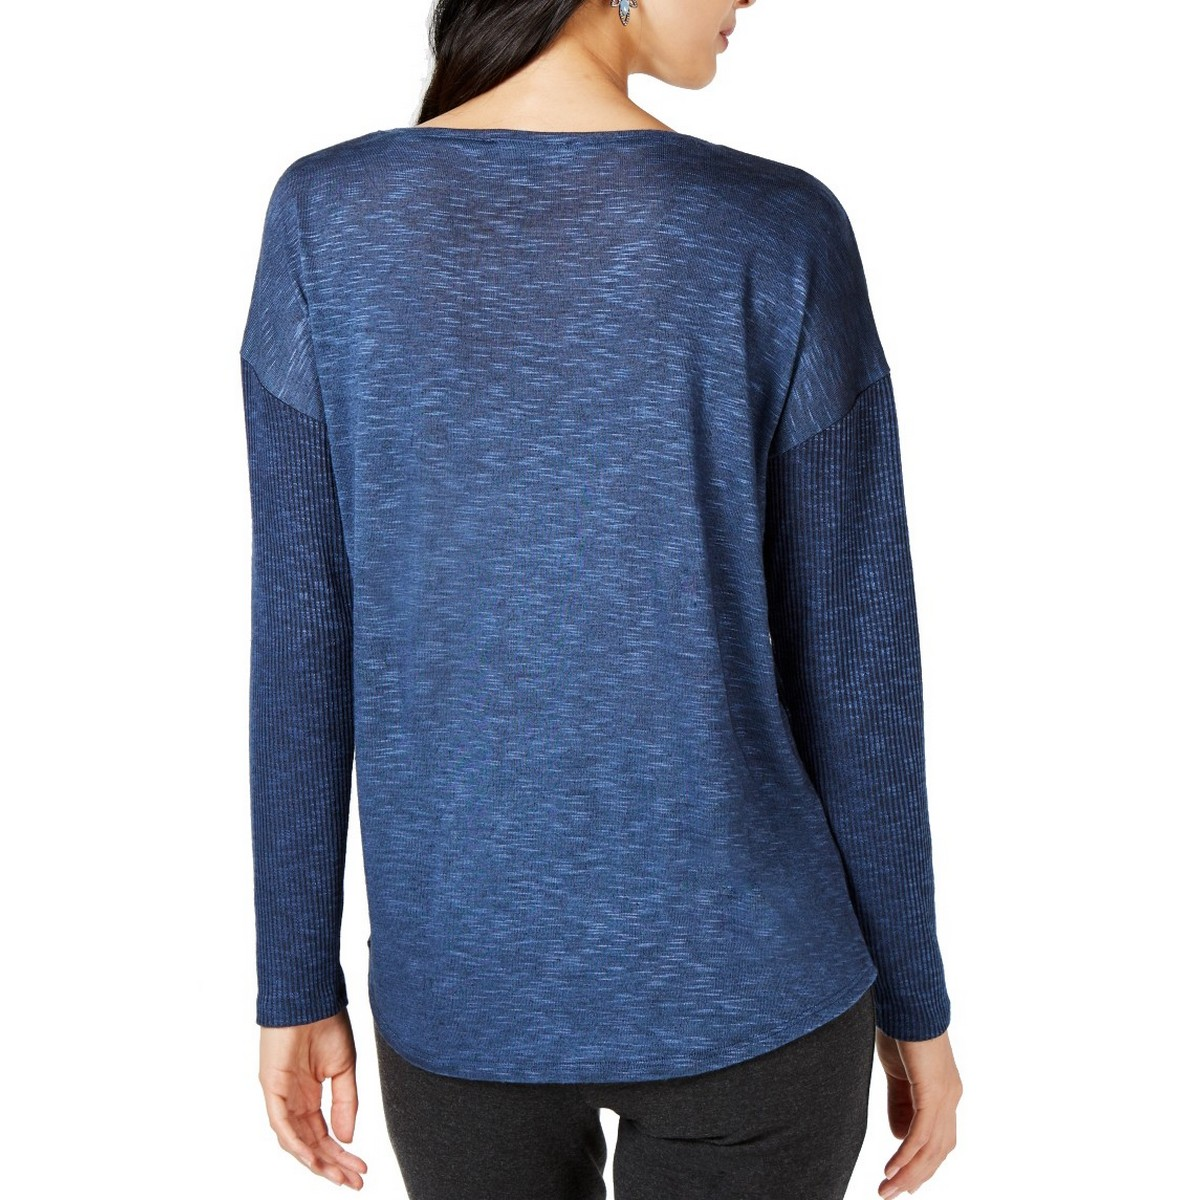 INC-NEW-Women-039-s-Long-Sleeve-Mixed-media-Knit-Casual-Shirt-Top-TEDO thumbnail 4